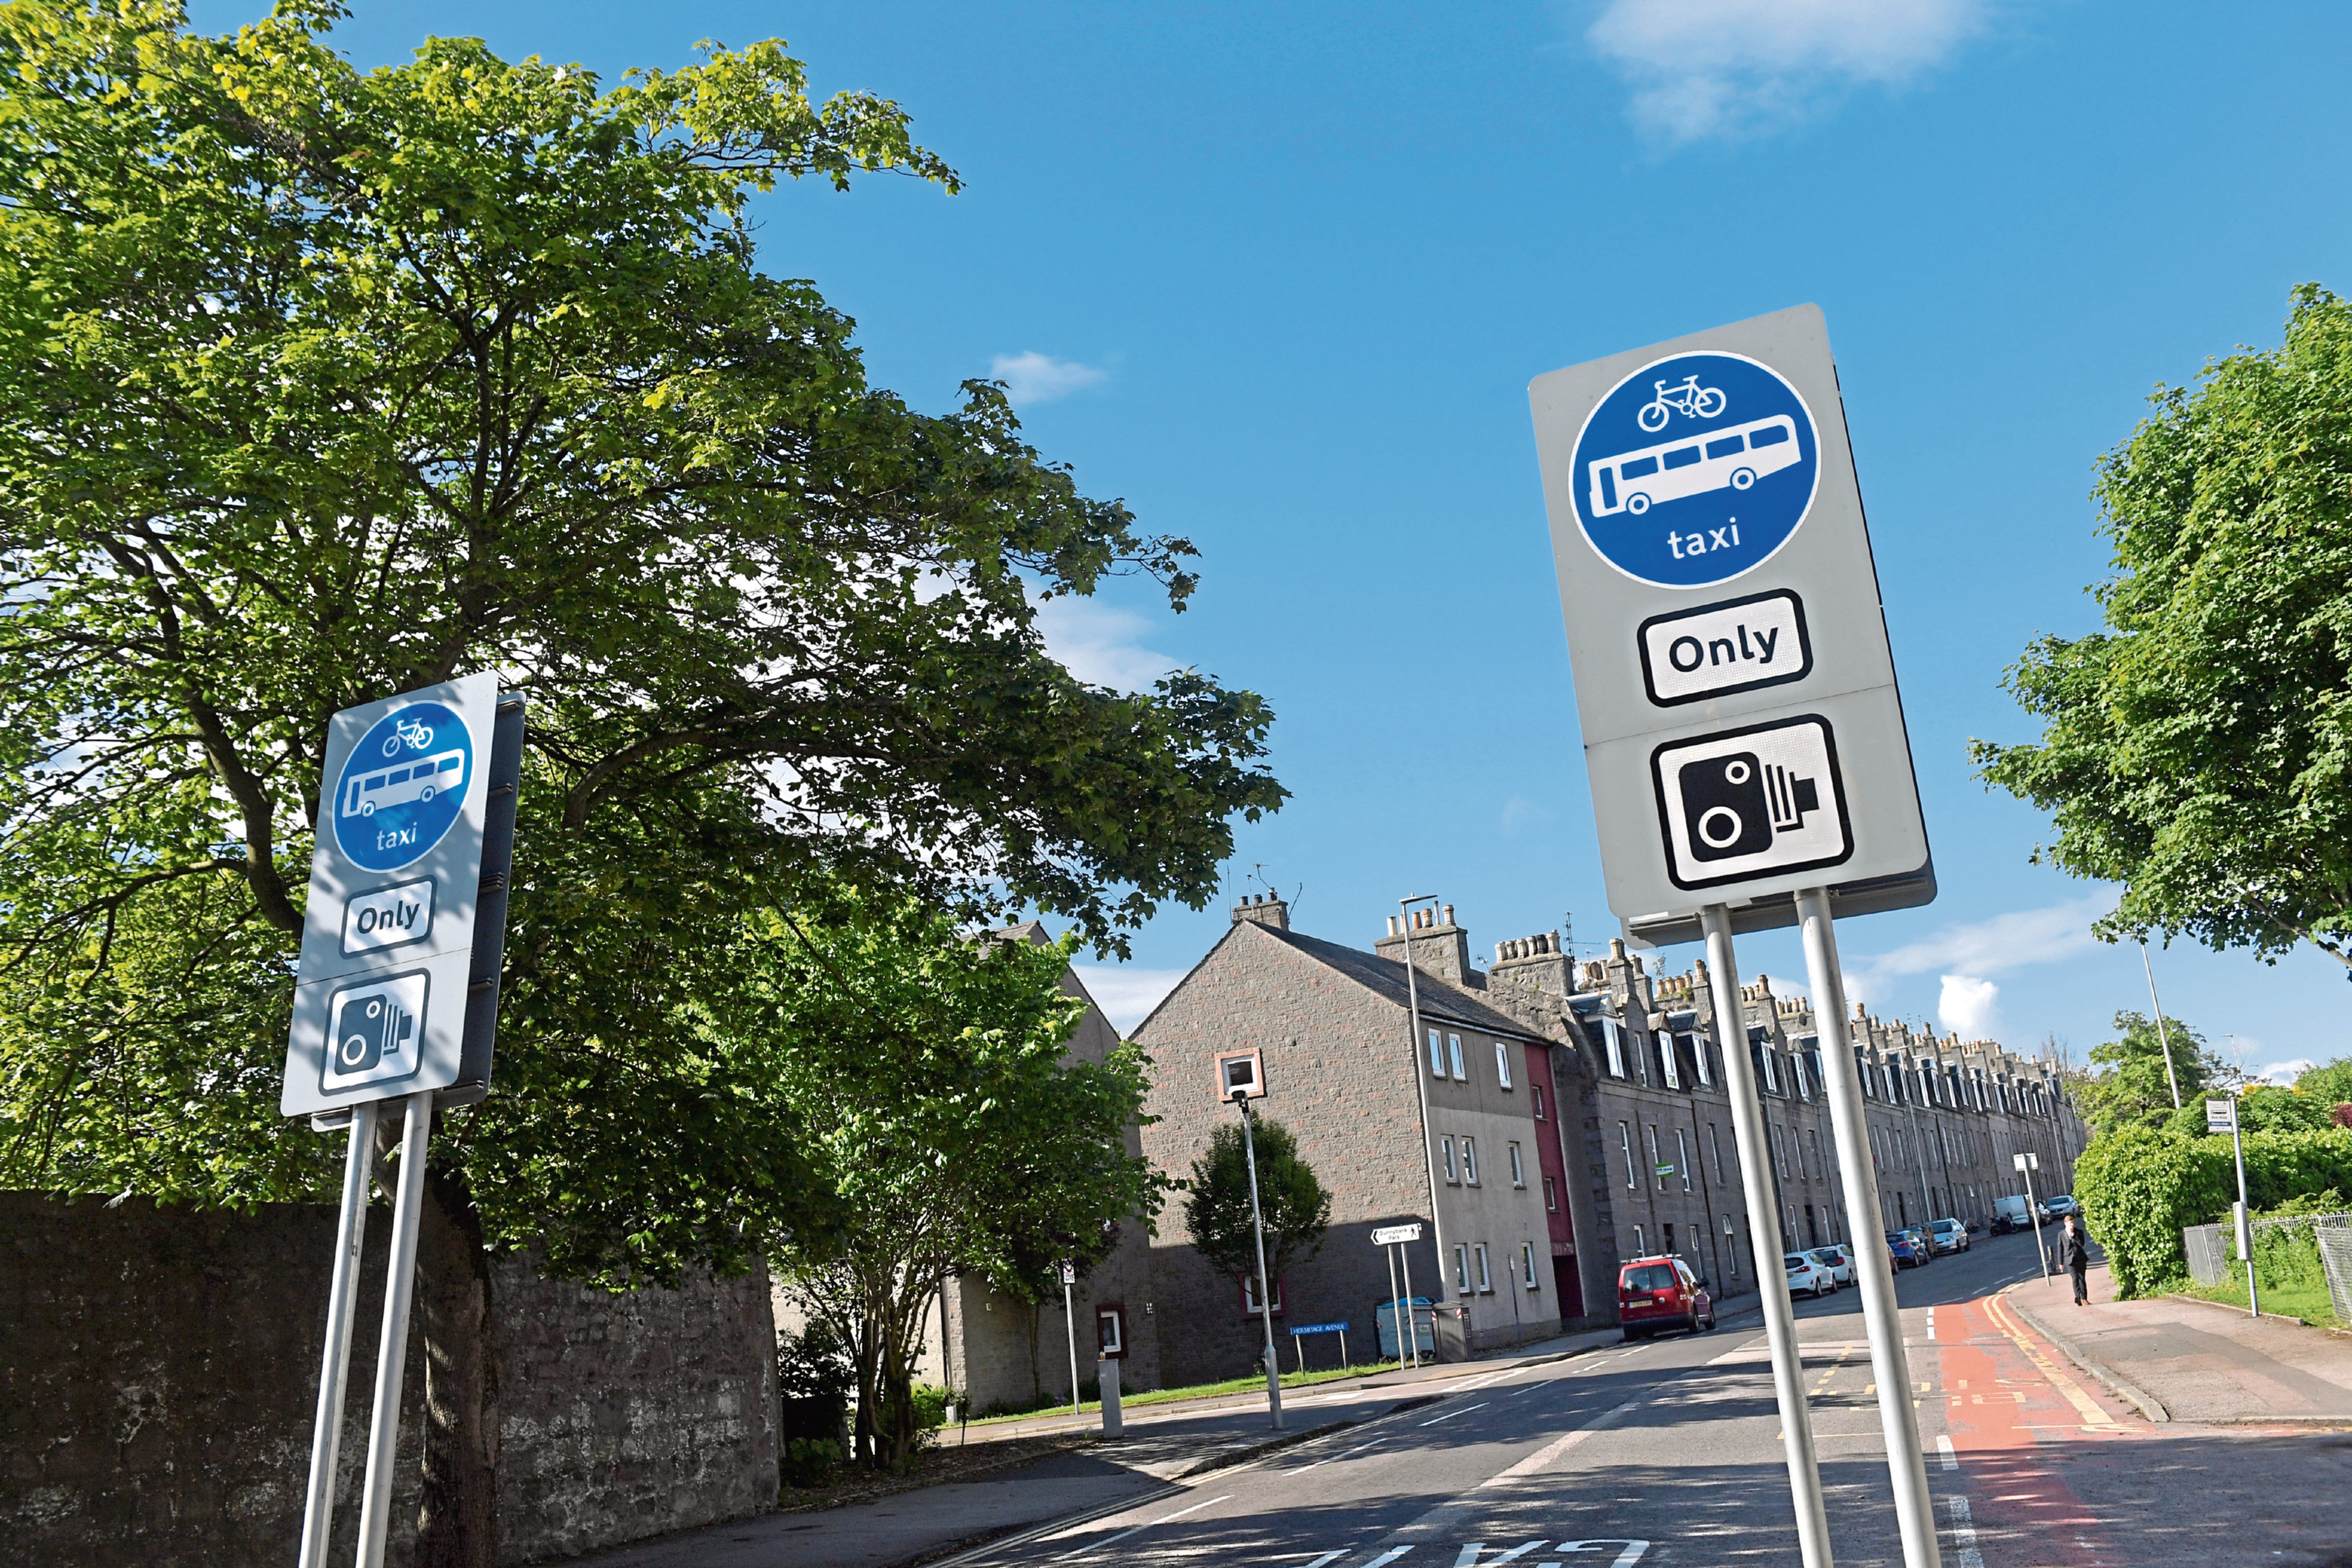 Signs have been put in place at the bus gate, six months after a public consultation was held